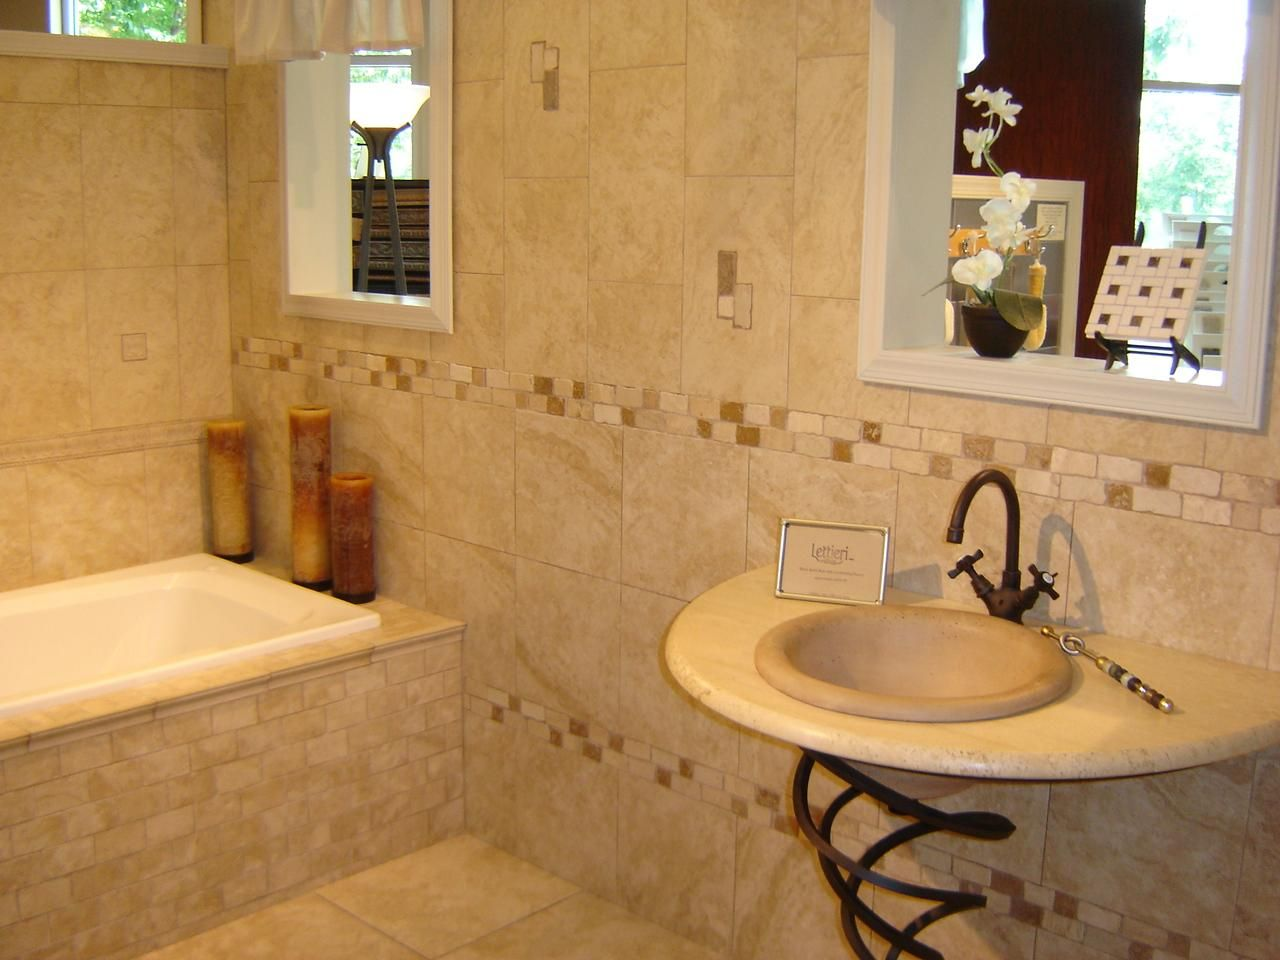 I'm a big fan of neutral colors used in tile work, and the tile ...